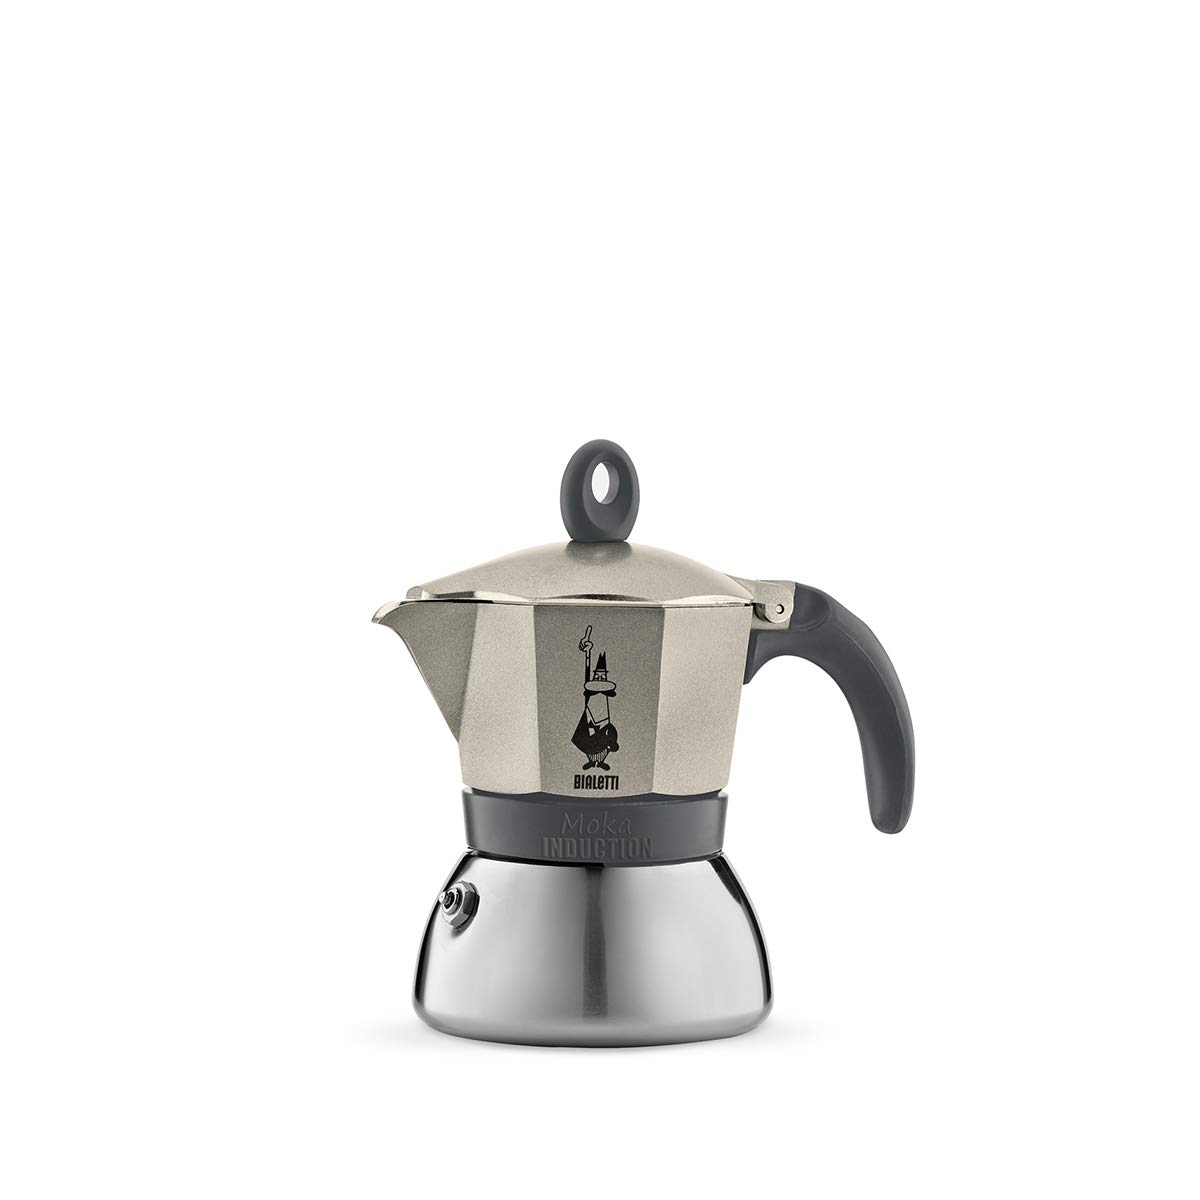 Red 3 Cups Free Shipping! Bialetti Moka Induction Coffee Maker